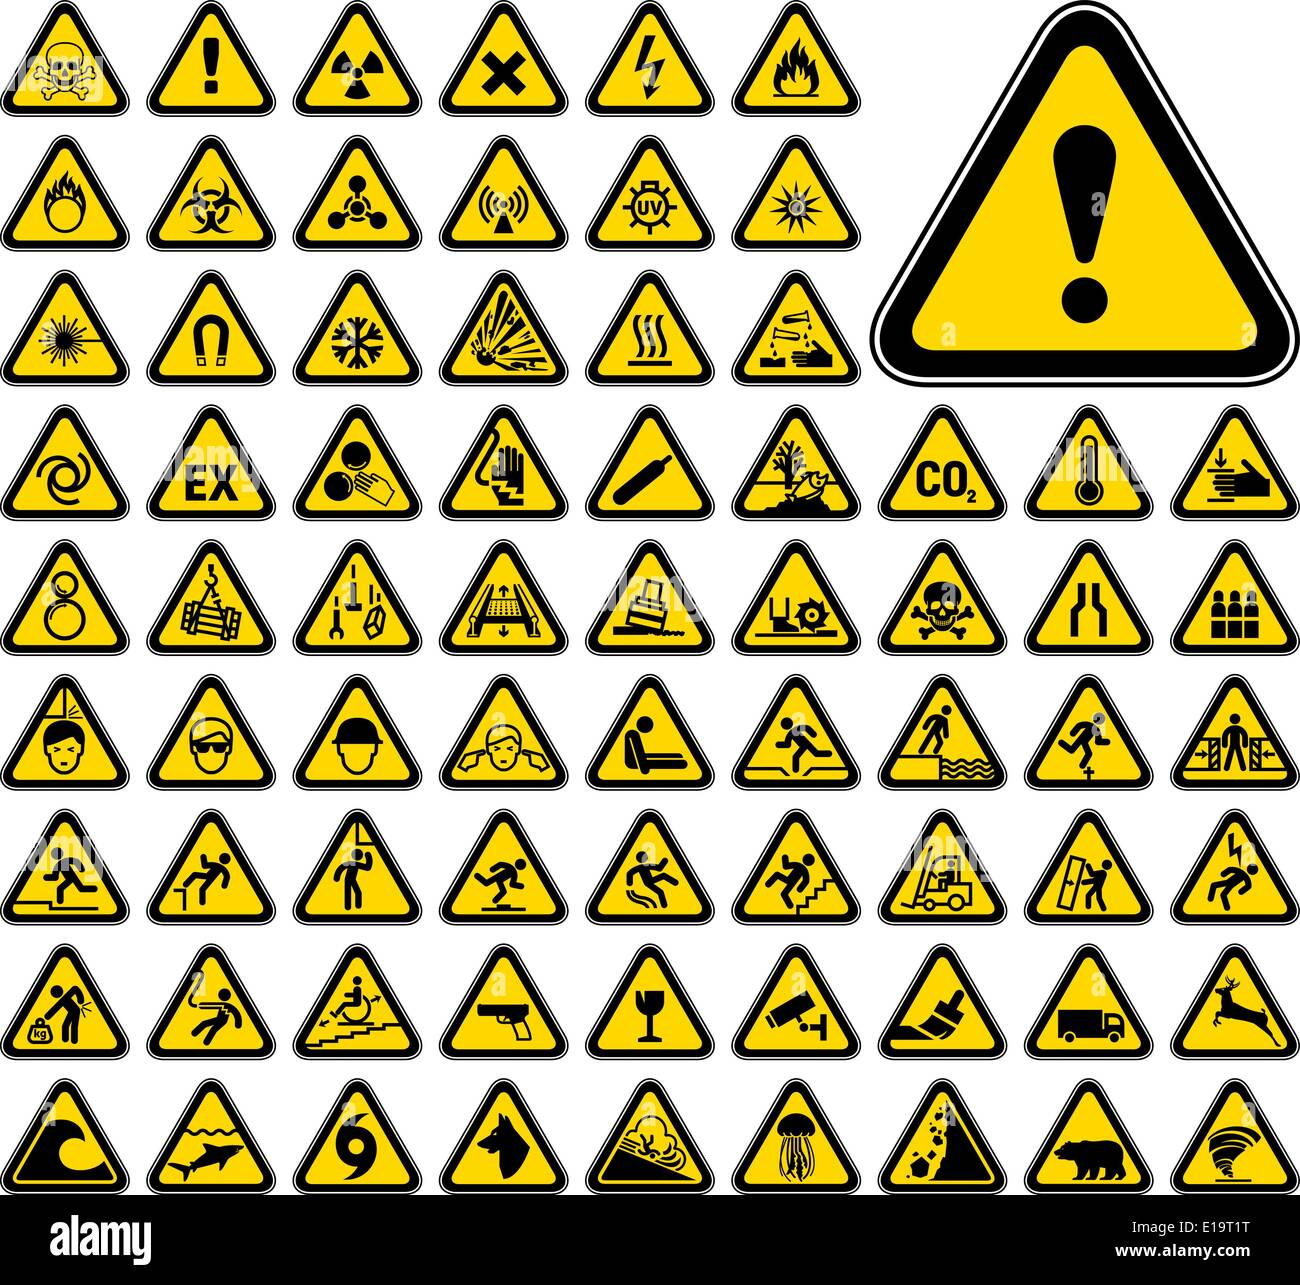 Biological hazard symbols stock photos biological hazard symbols 72 triangular warning hazard symbols stock image biocorpaavc